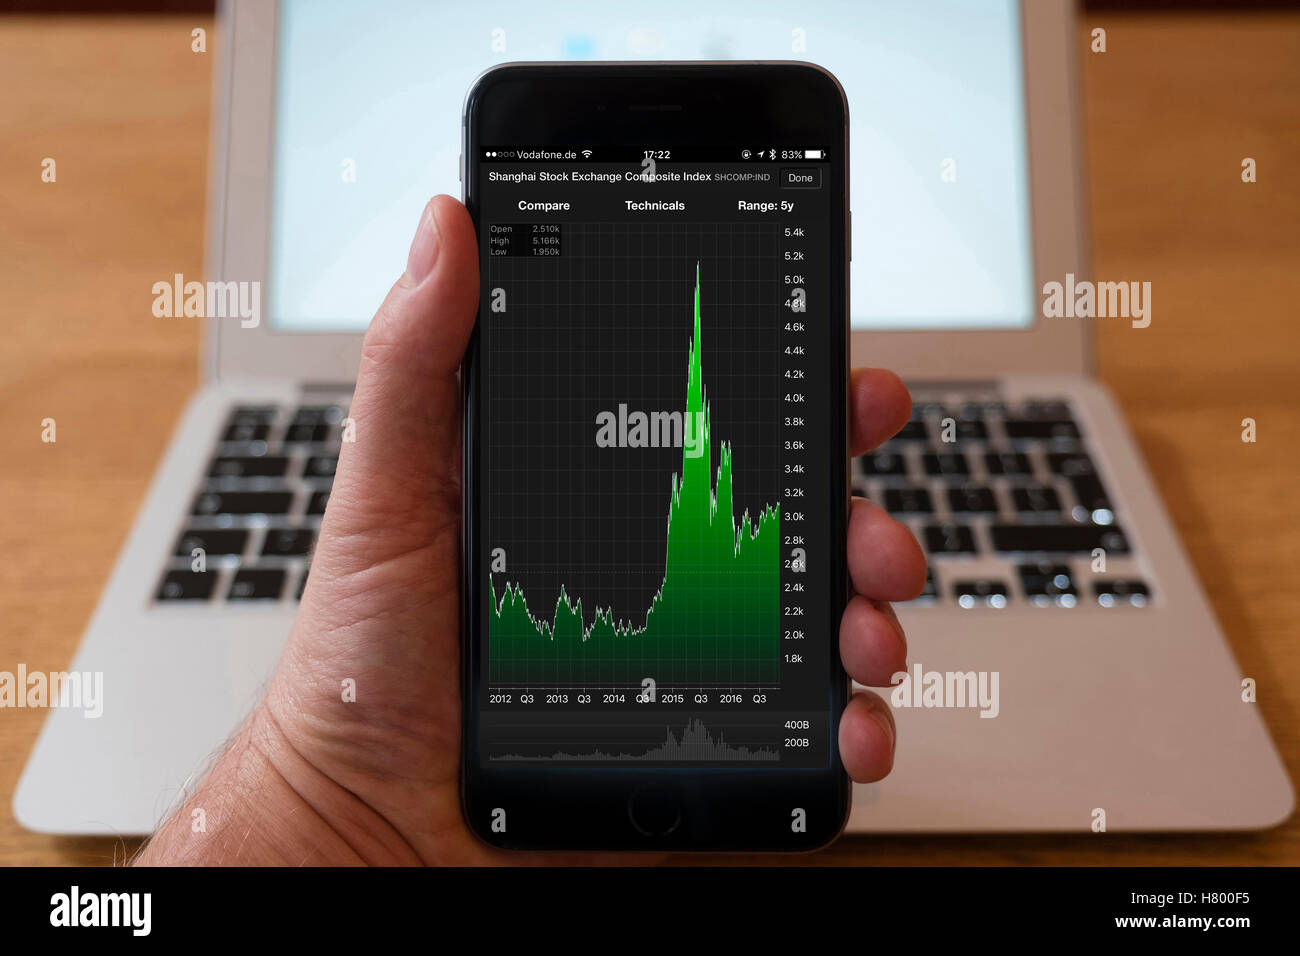 Using iPhone smartphone to display stock market performance chart for Shanghai Stock Exchange Composite Index, - Stock Image